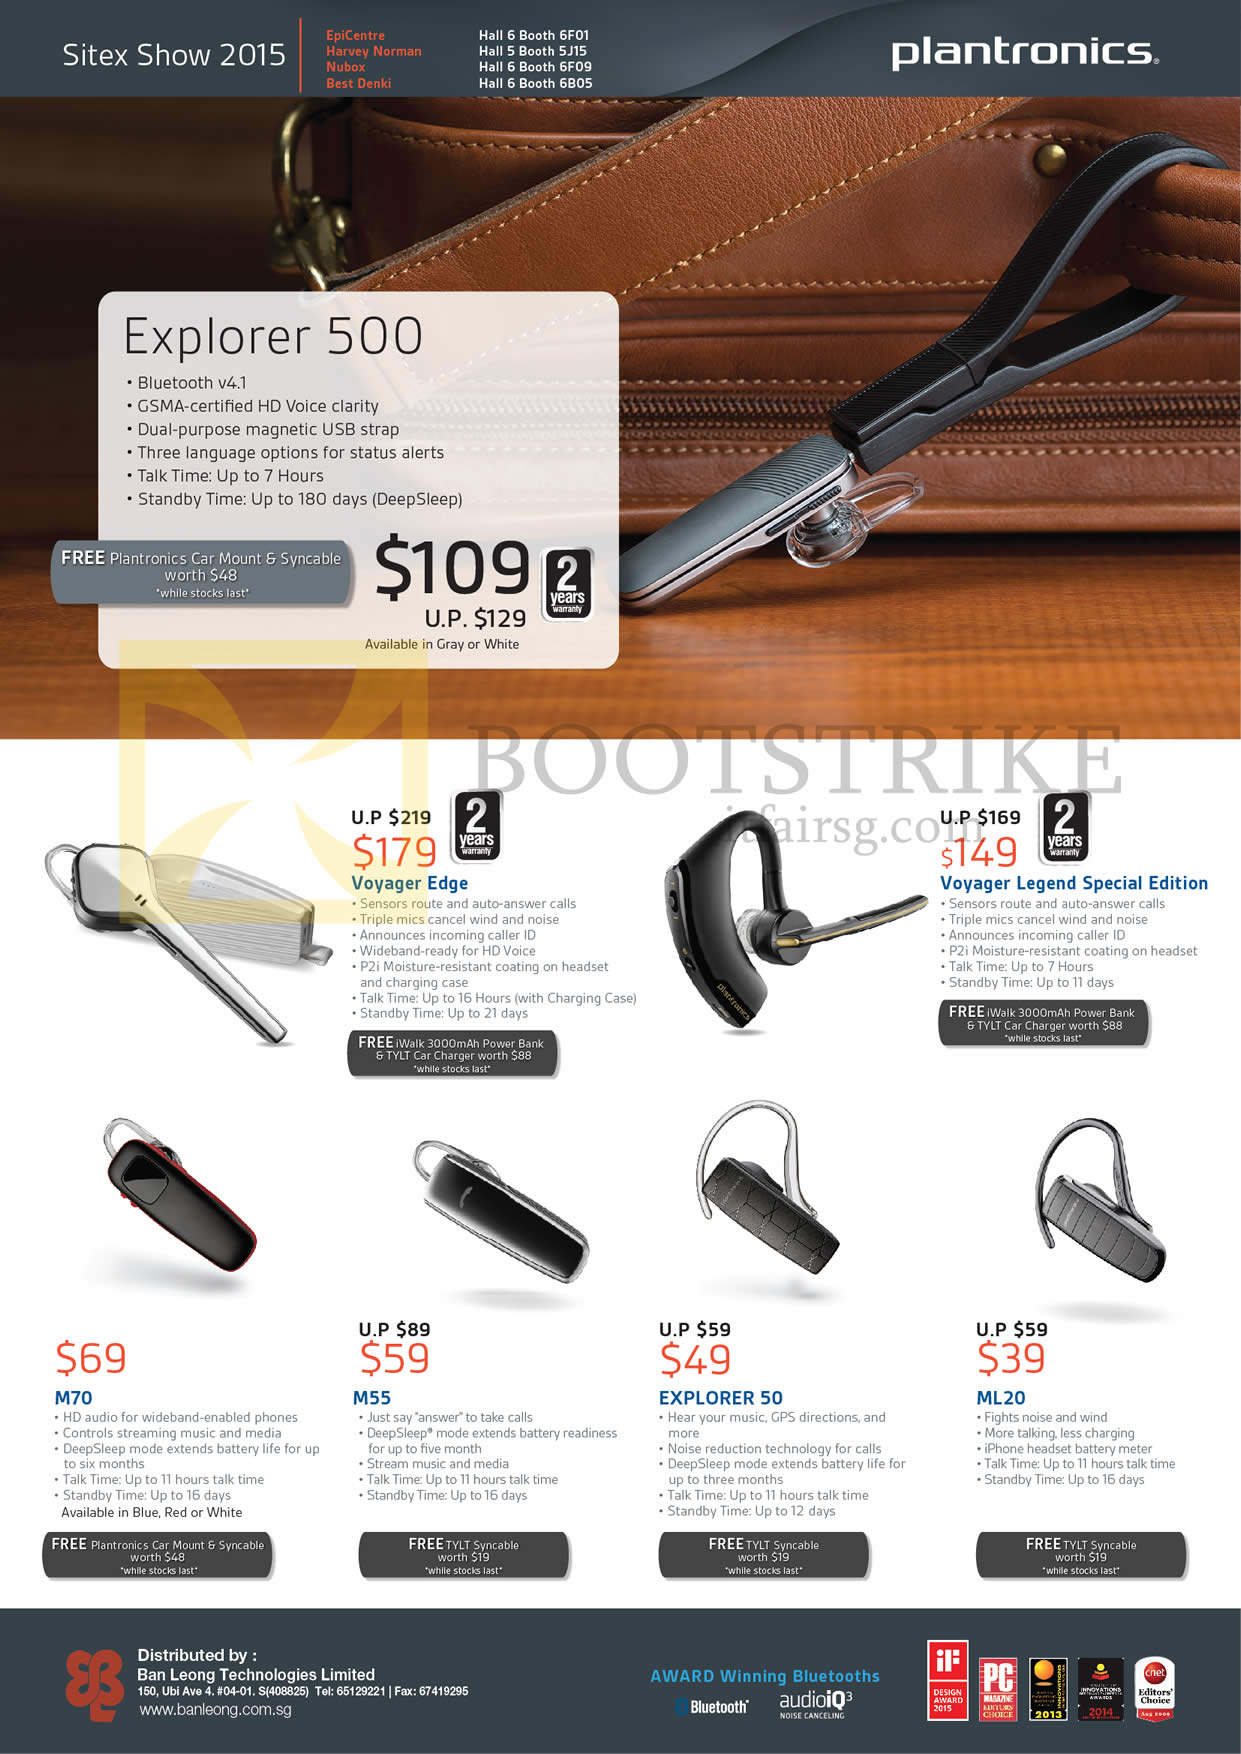 SITEX 2015 price list image brochure of Plantronics Bluetooth Headsets Explorer 500, Voyager Edge, Legend Special Edition, M70, M55, 50, ML20